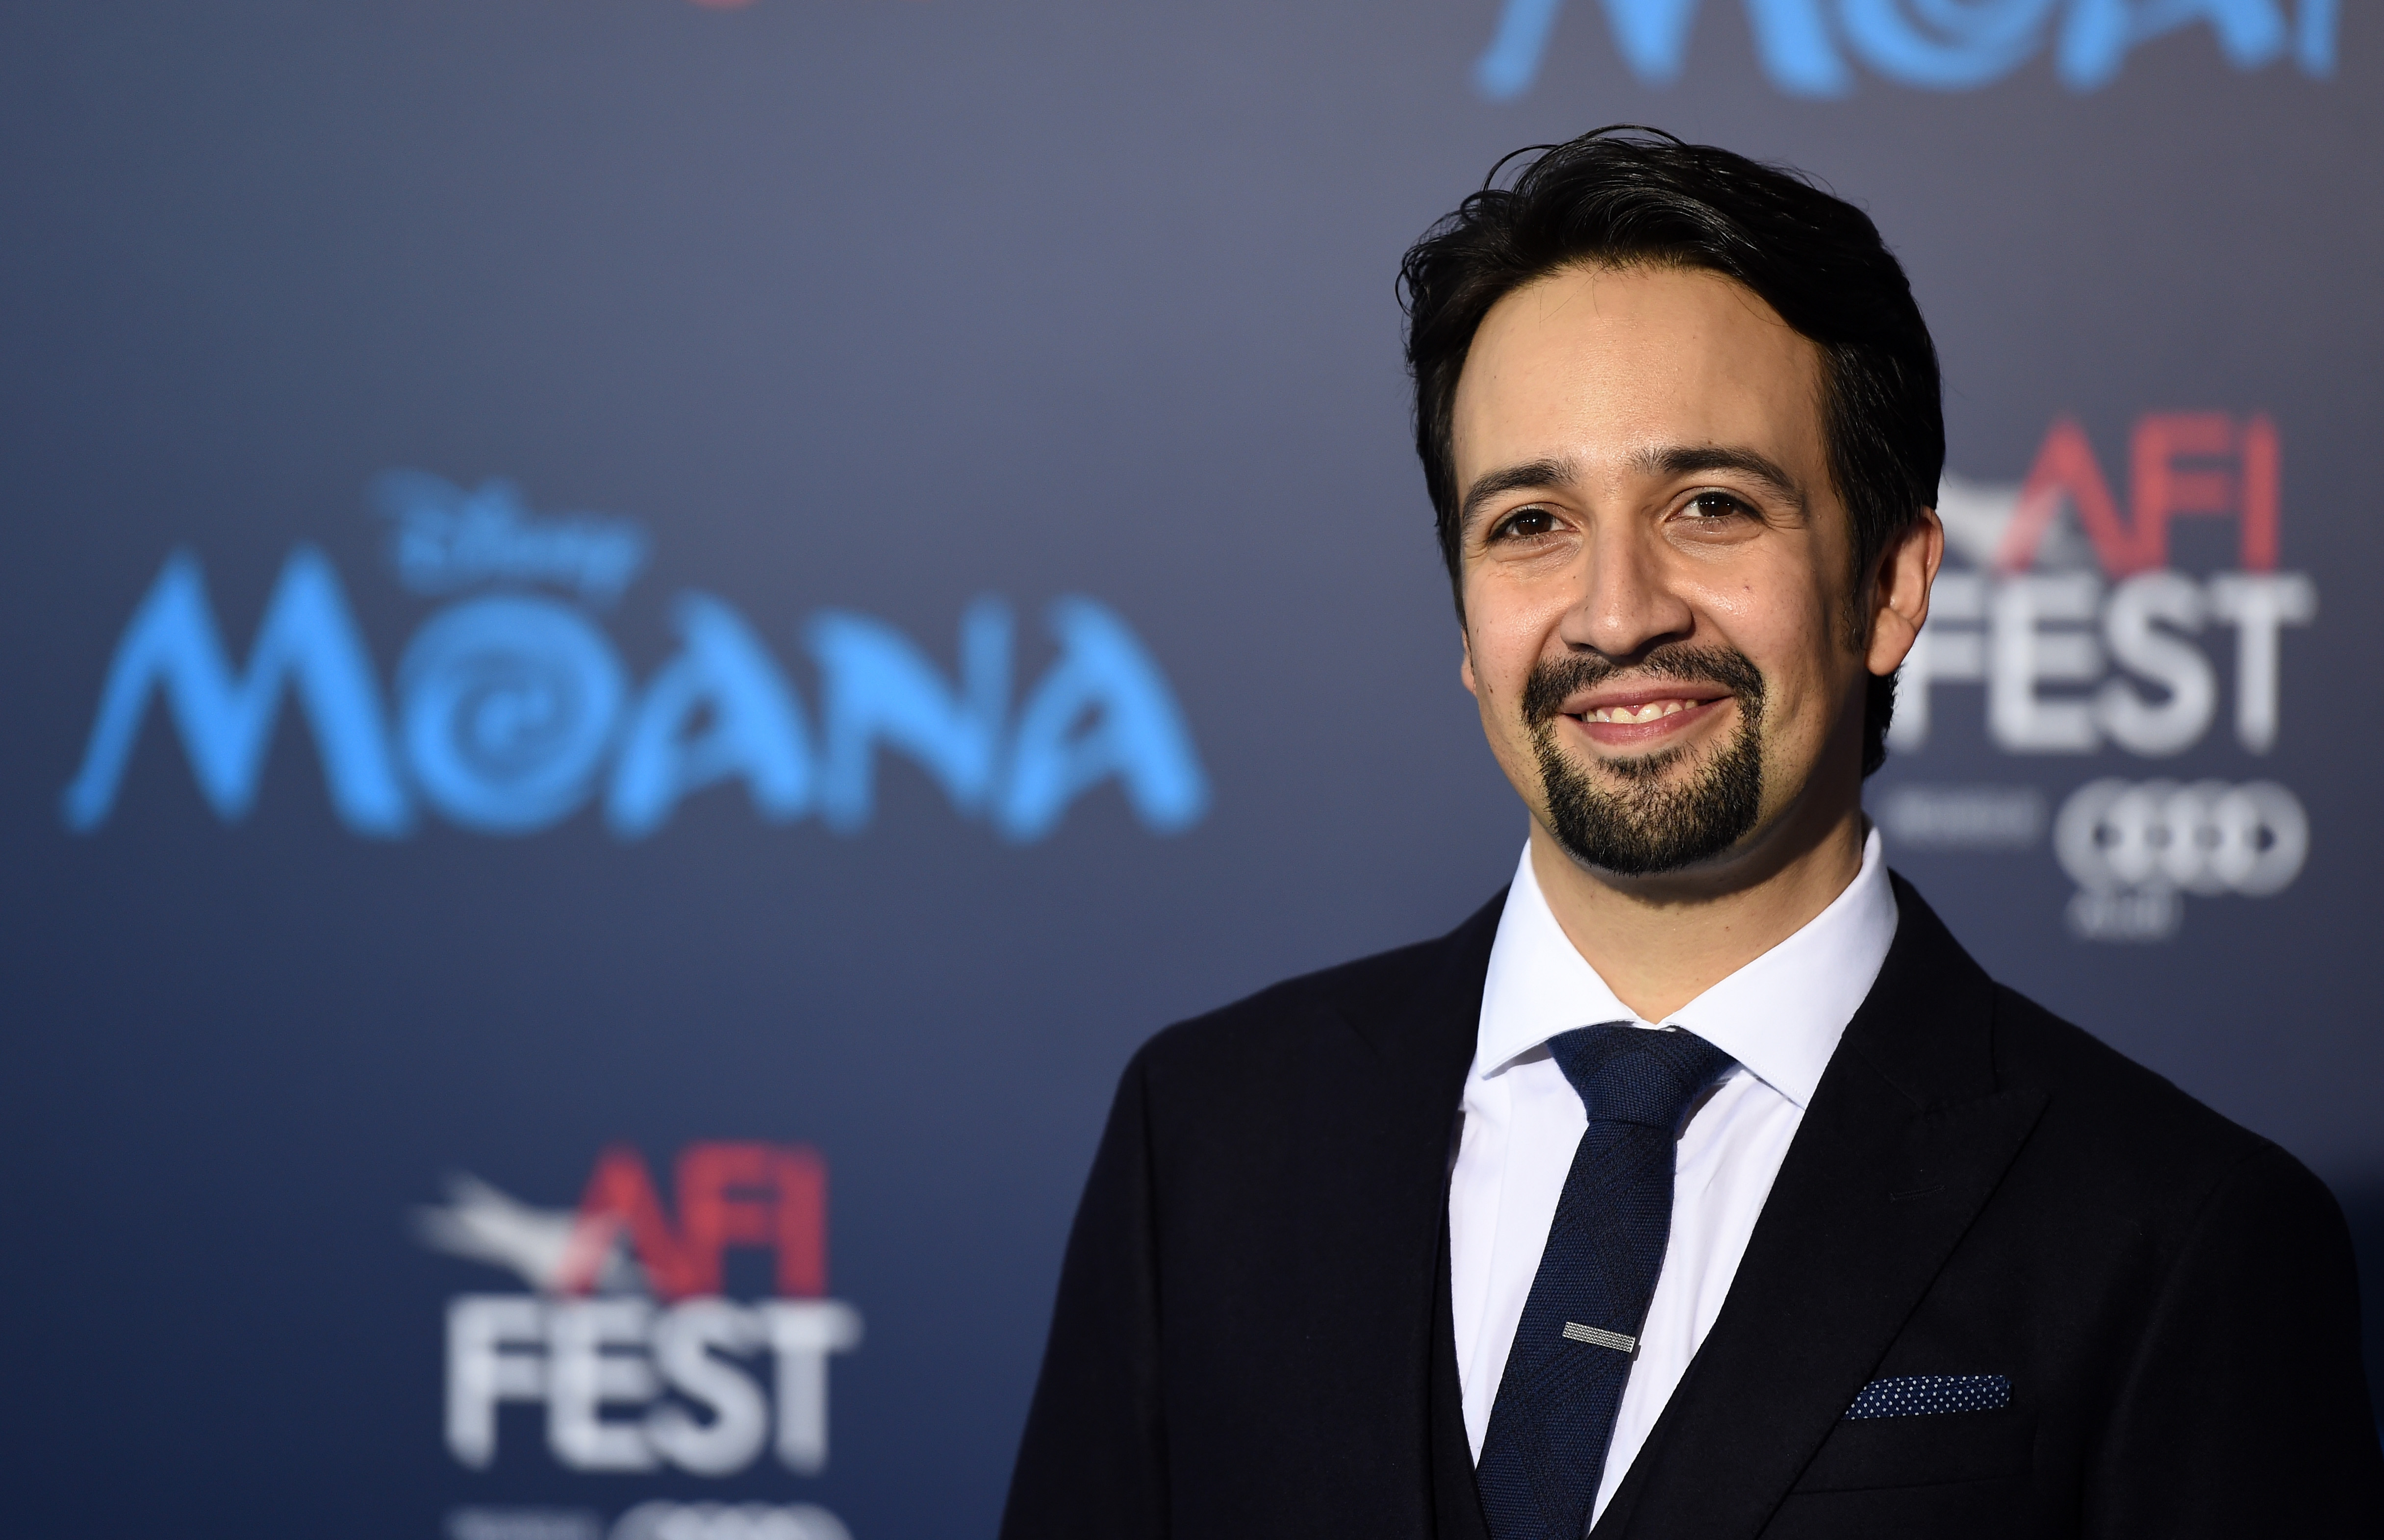 Actor and rapper Lin-Manuel Miranda arrives at the AFI FEST 2016 Presented By Audi premiere of Disney's  Moana  at the El Capitan Theatre on November 14, 2016 in Hollywood, California.